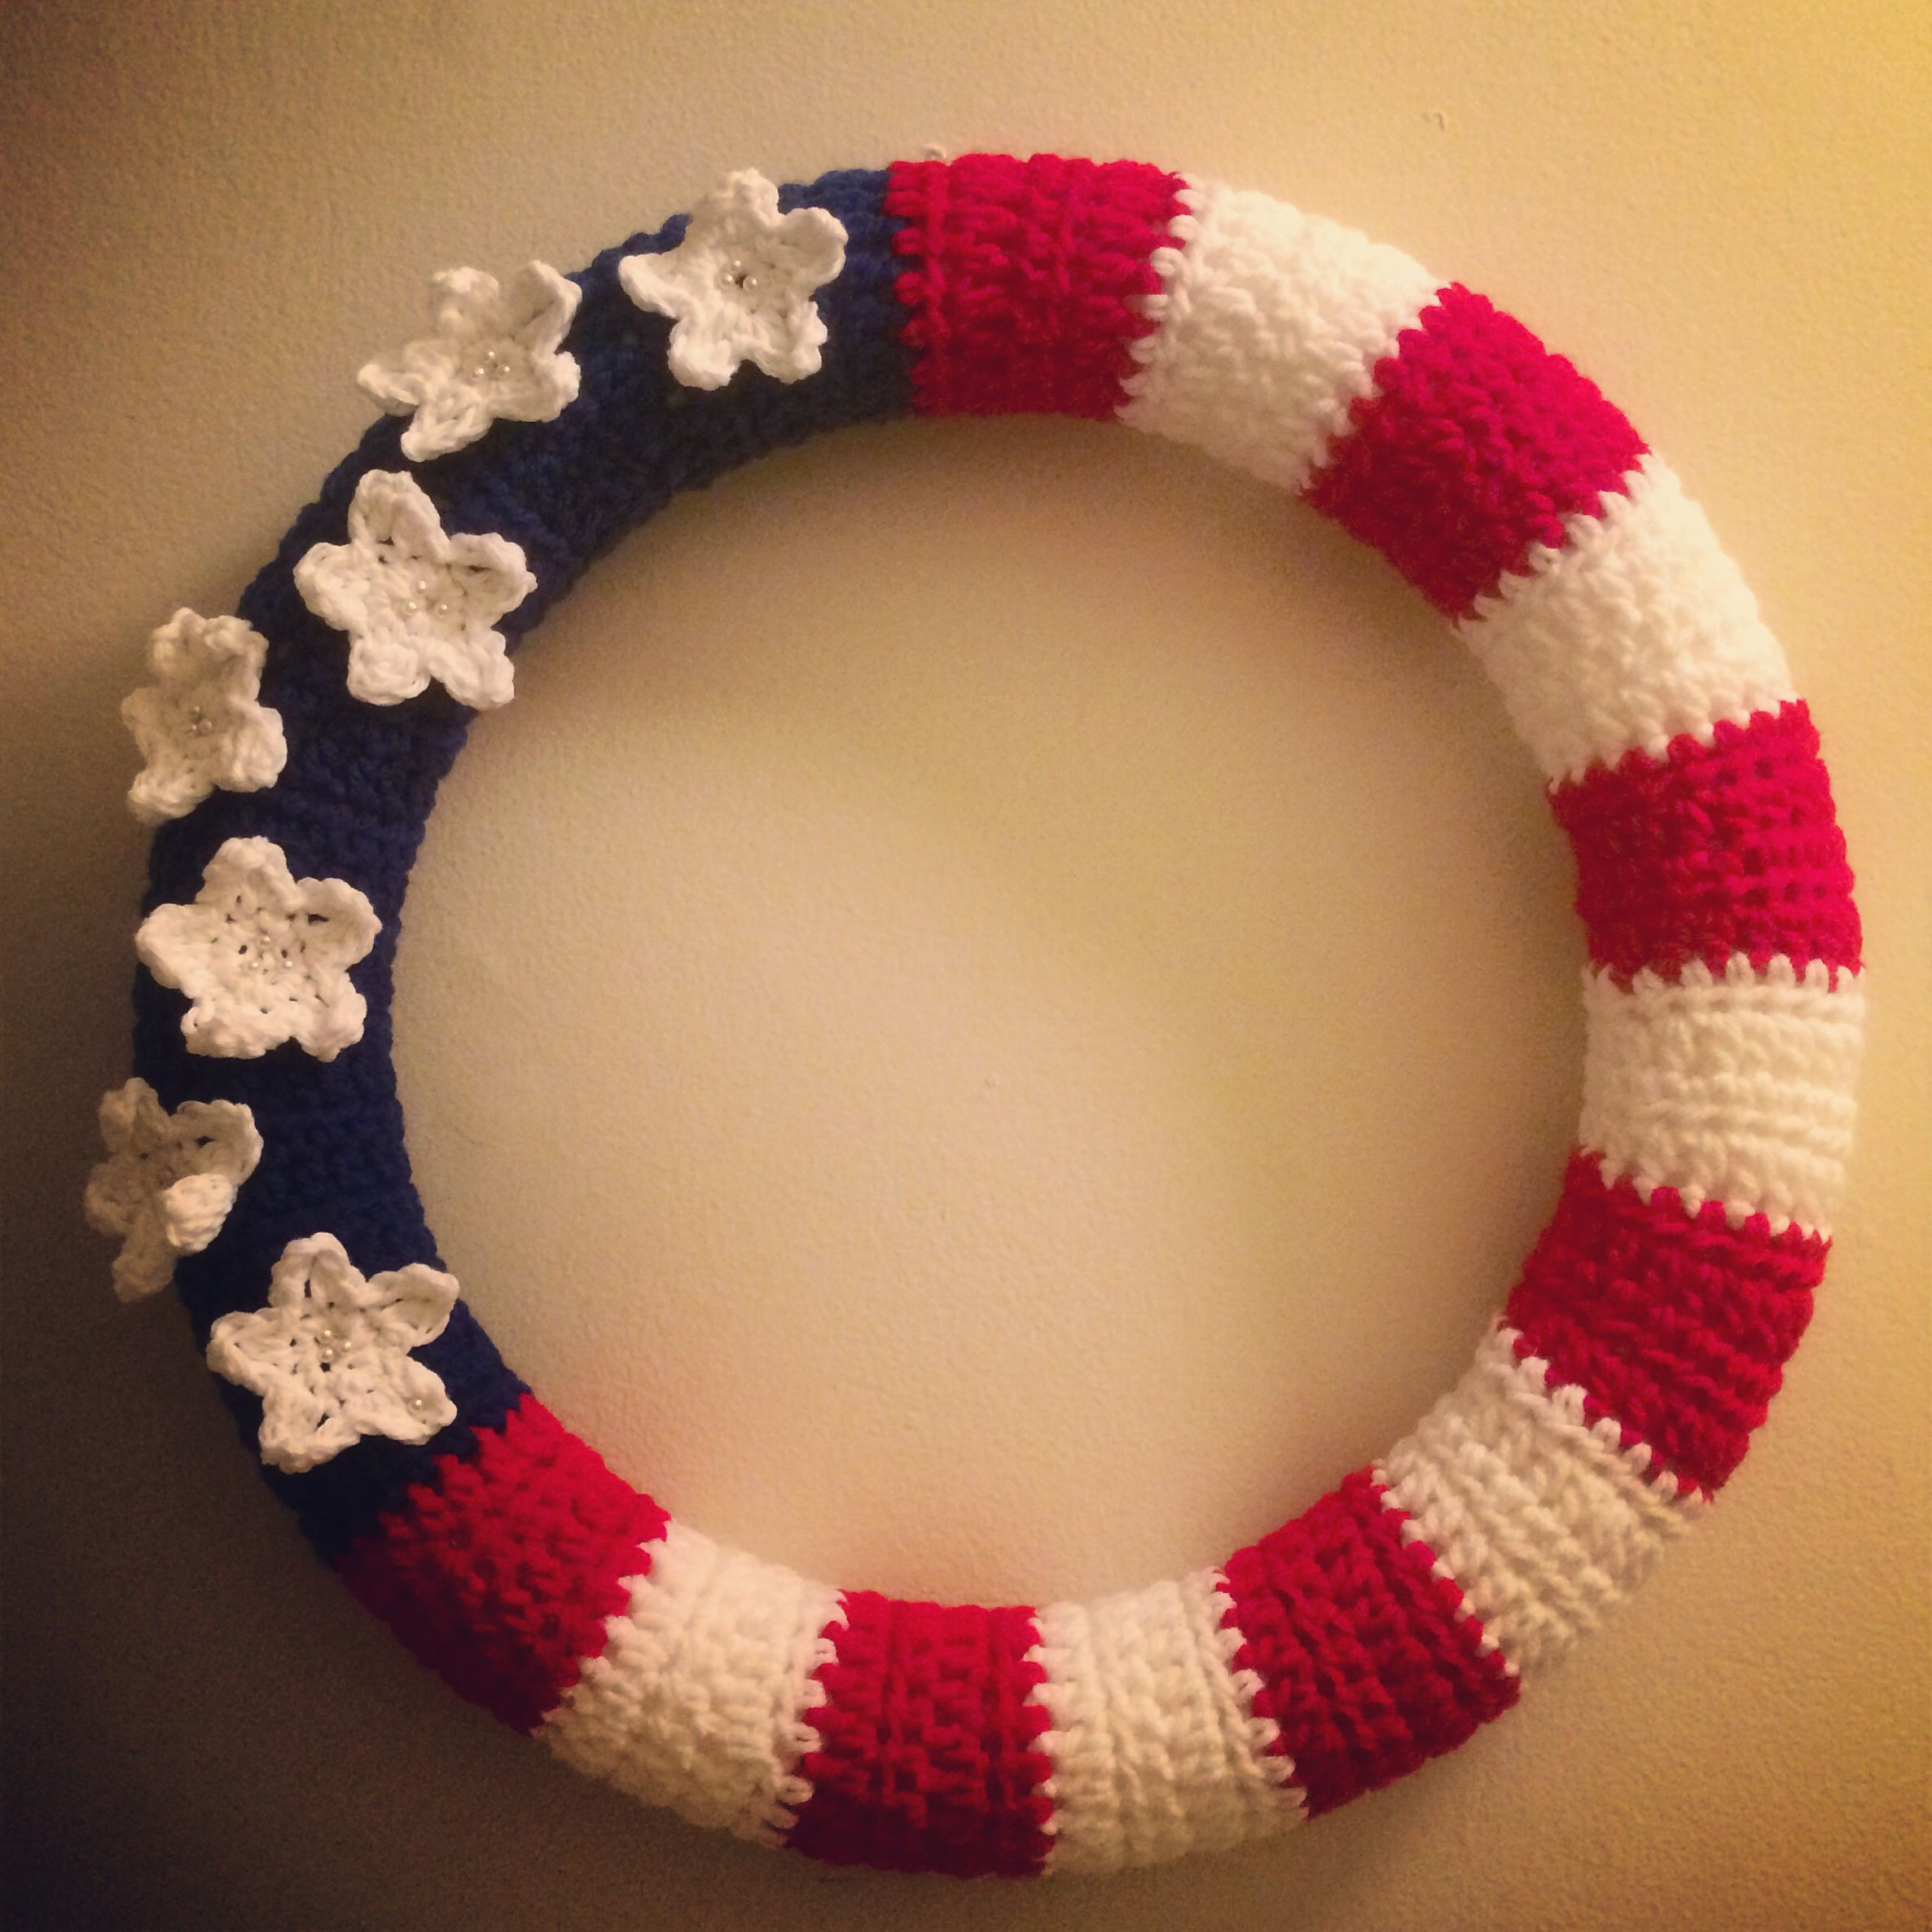 July 4th inspired door wreath. Used the link below for free pattern ...